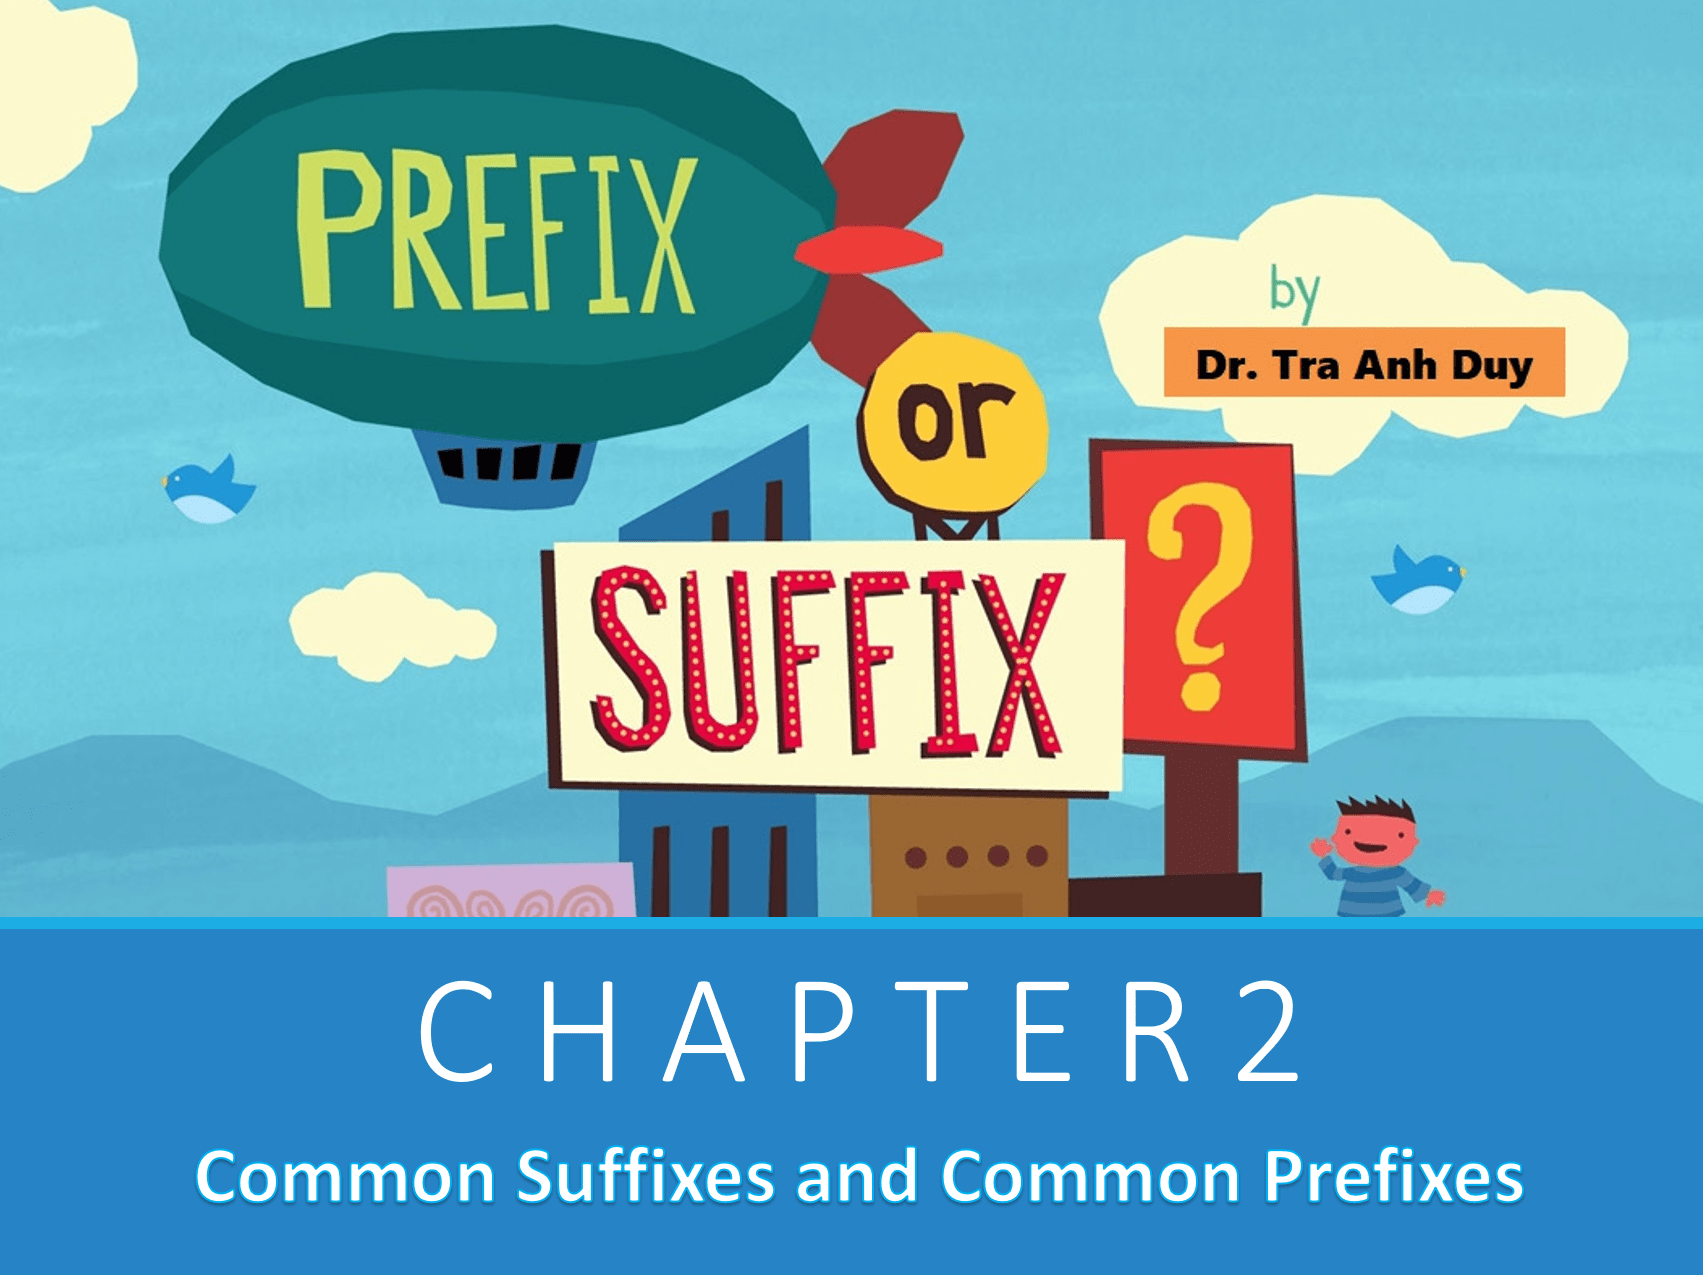 Chapter 2: Common Suffixes and Common Prefixes